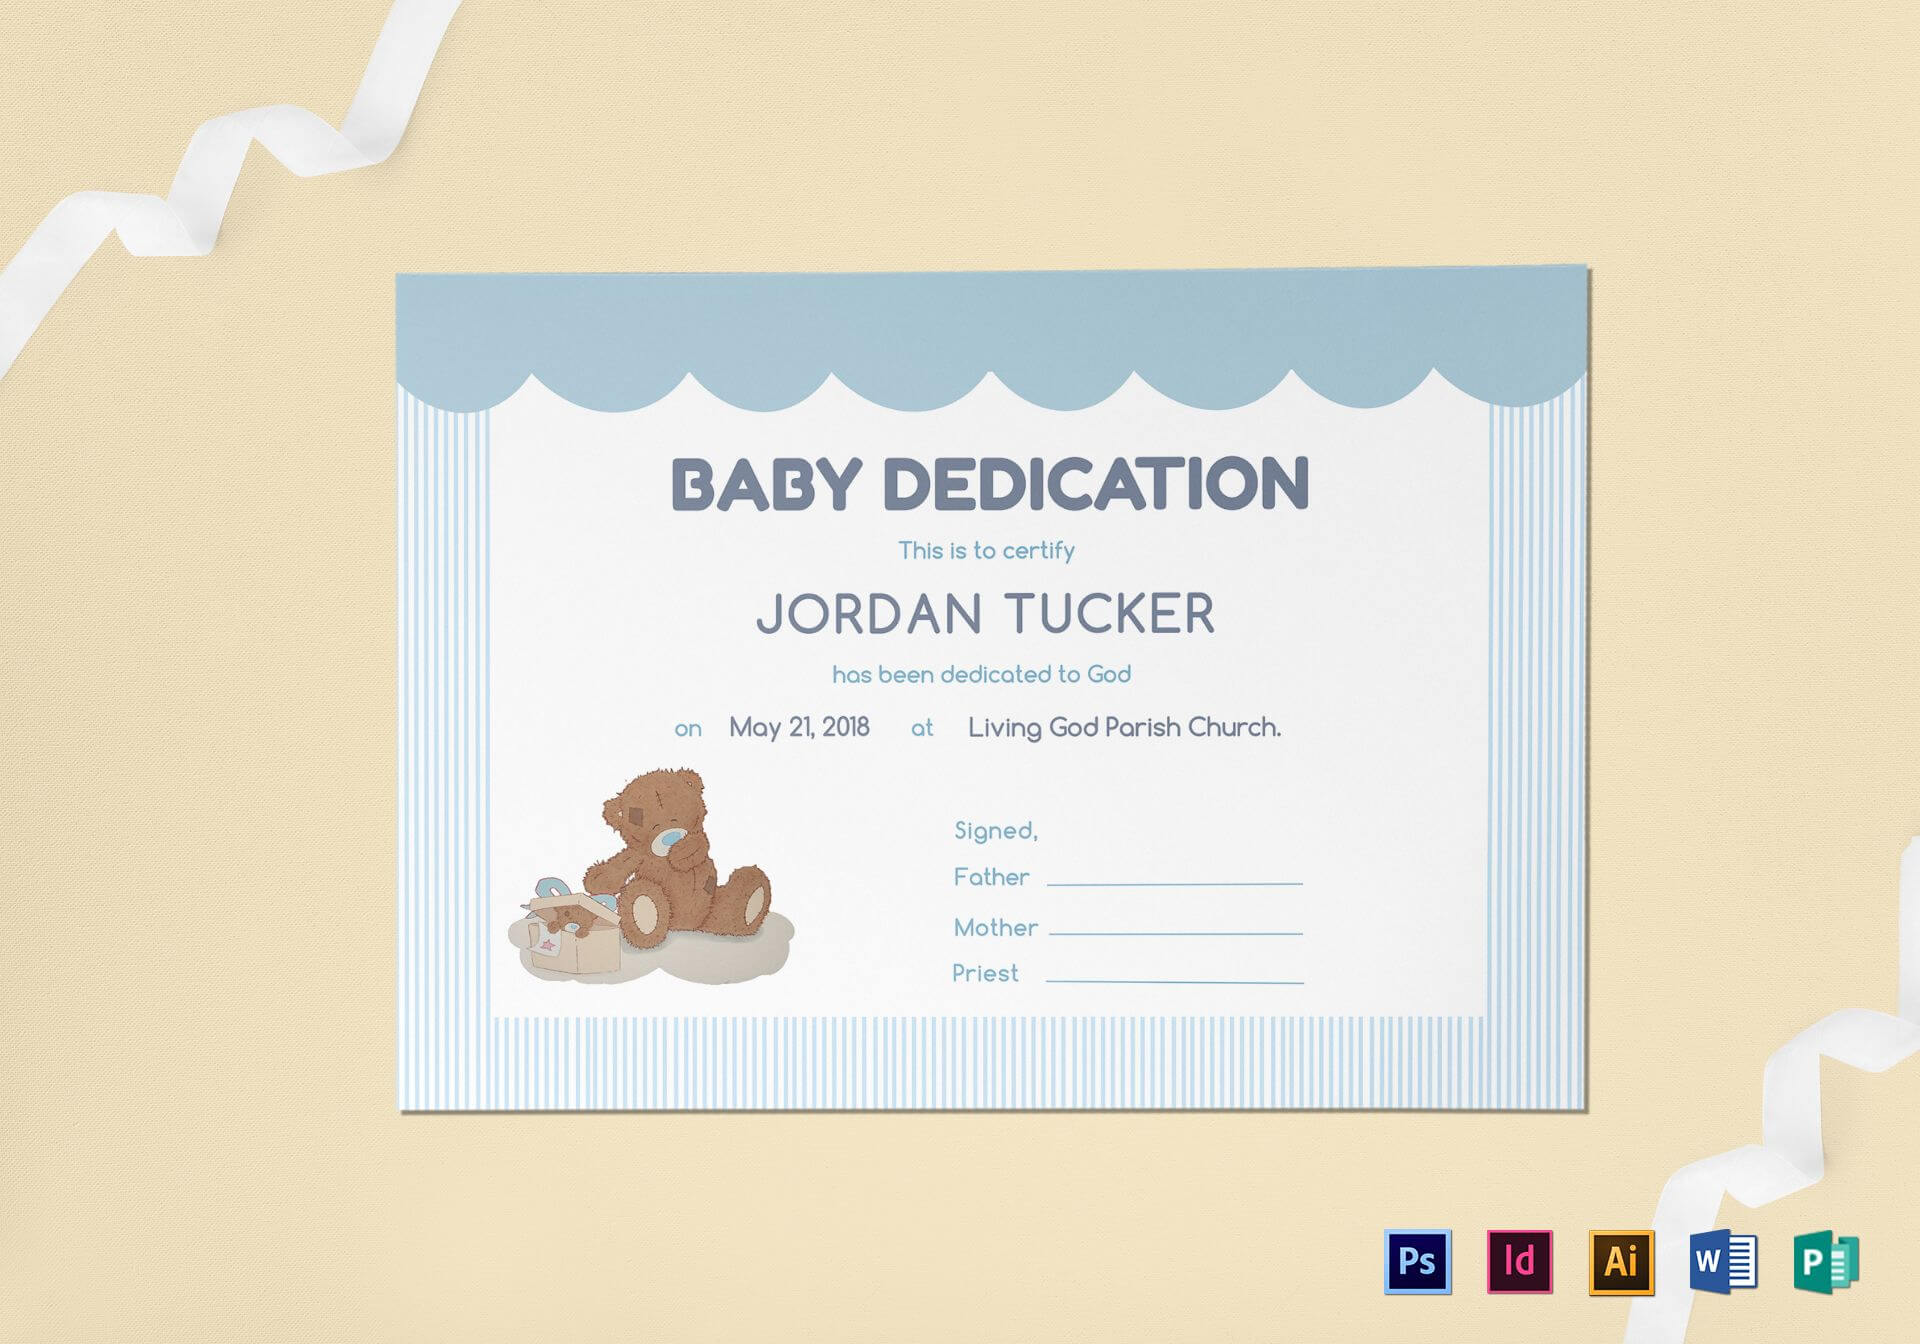 Baby Dedication Certificate Template For Baby Dedication Certificate Template